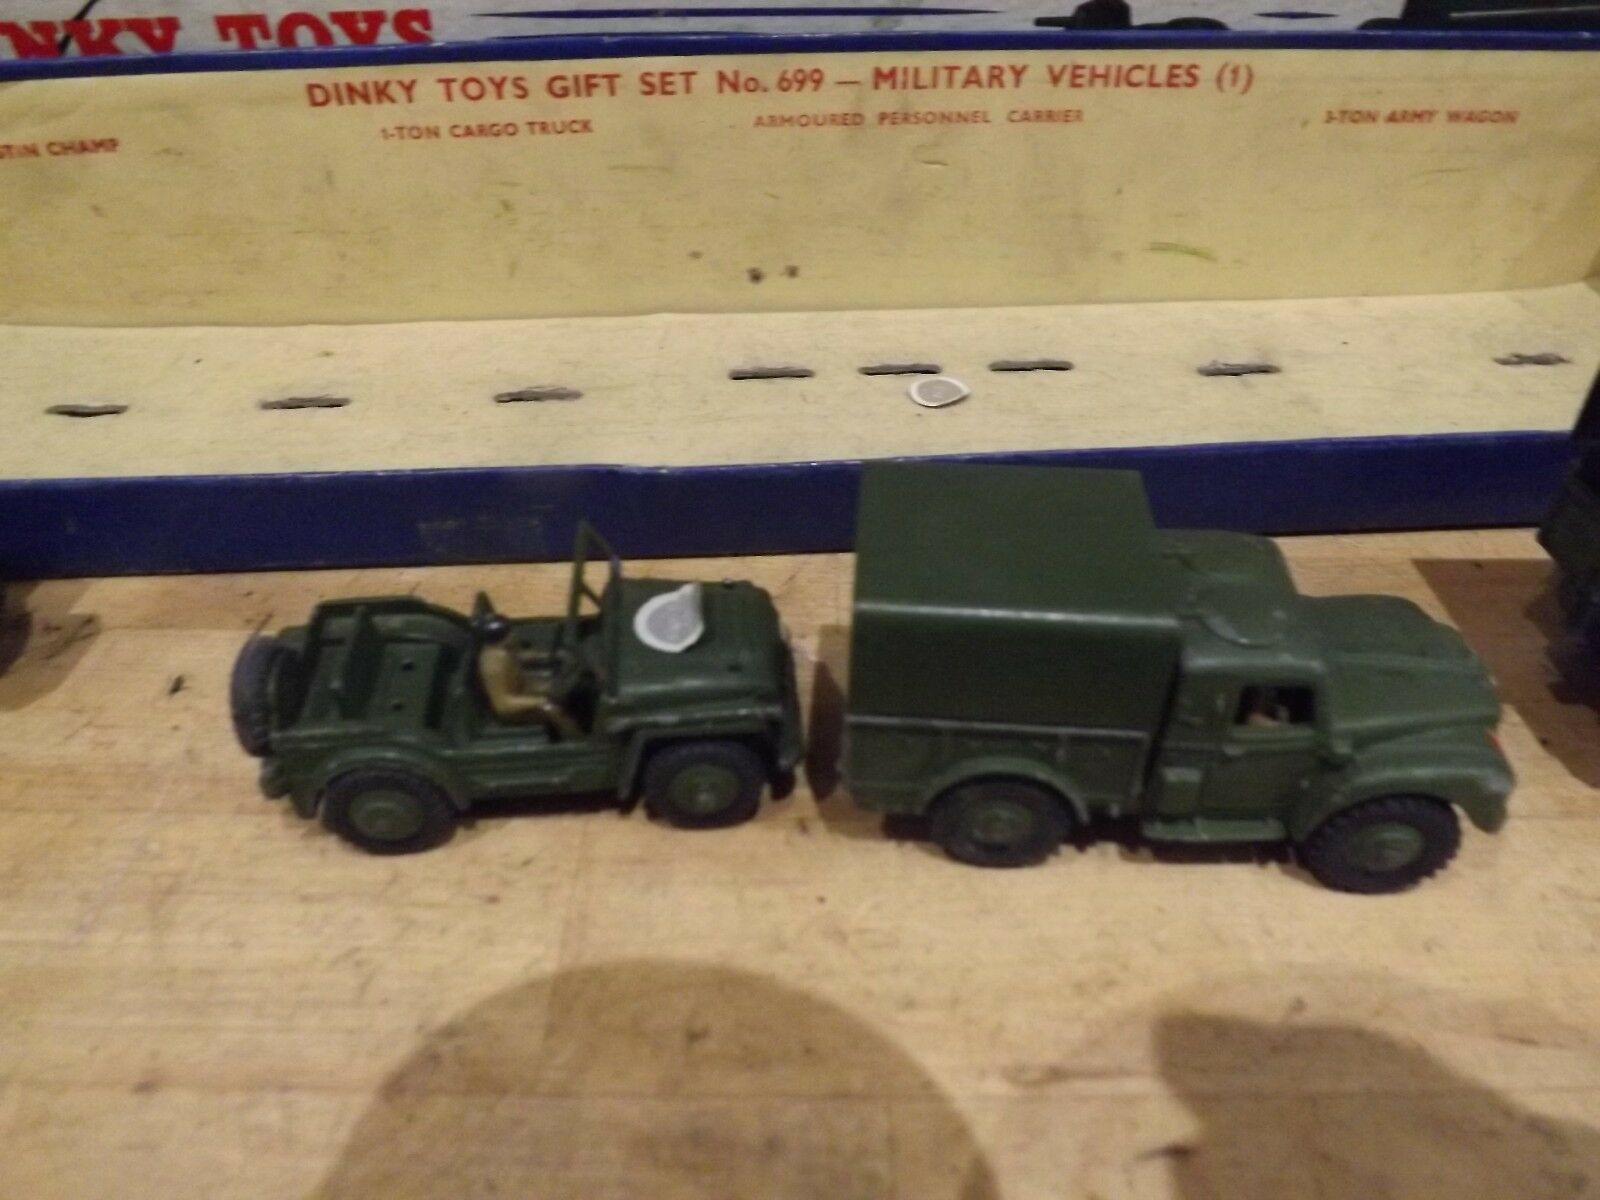 Vintage DINKY TOYS MILITAIRE Boxed Set 699 Diecast véhicules véhicules véhicules Coffret 674 641 676 621 | Shopping Online  8dafe3